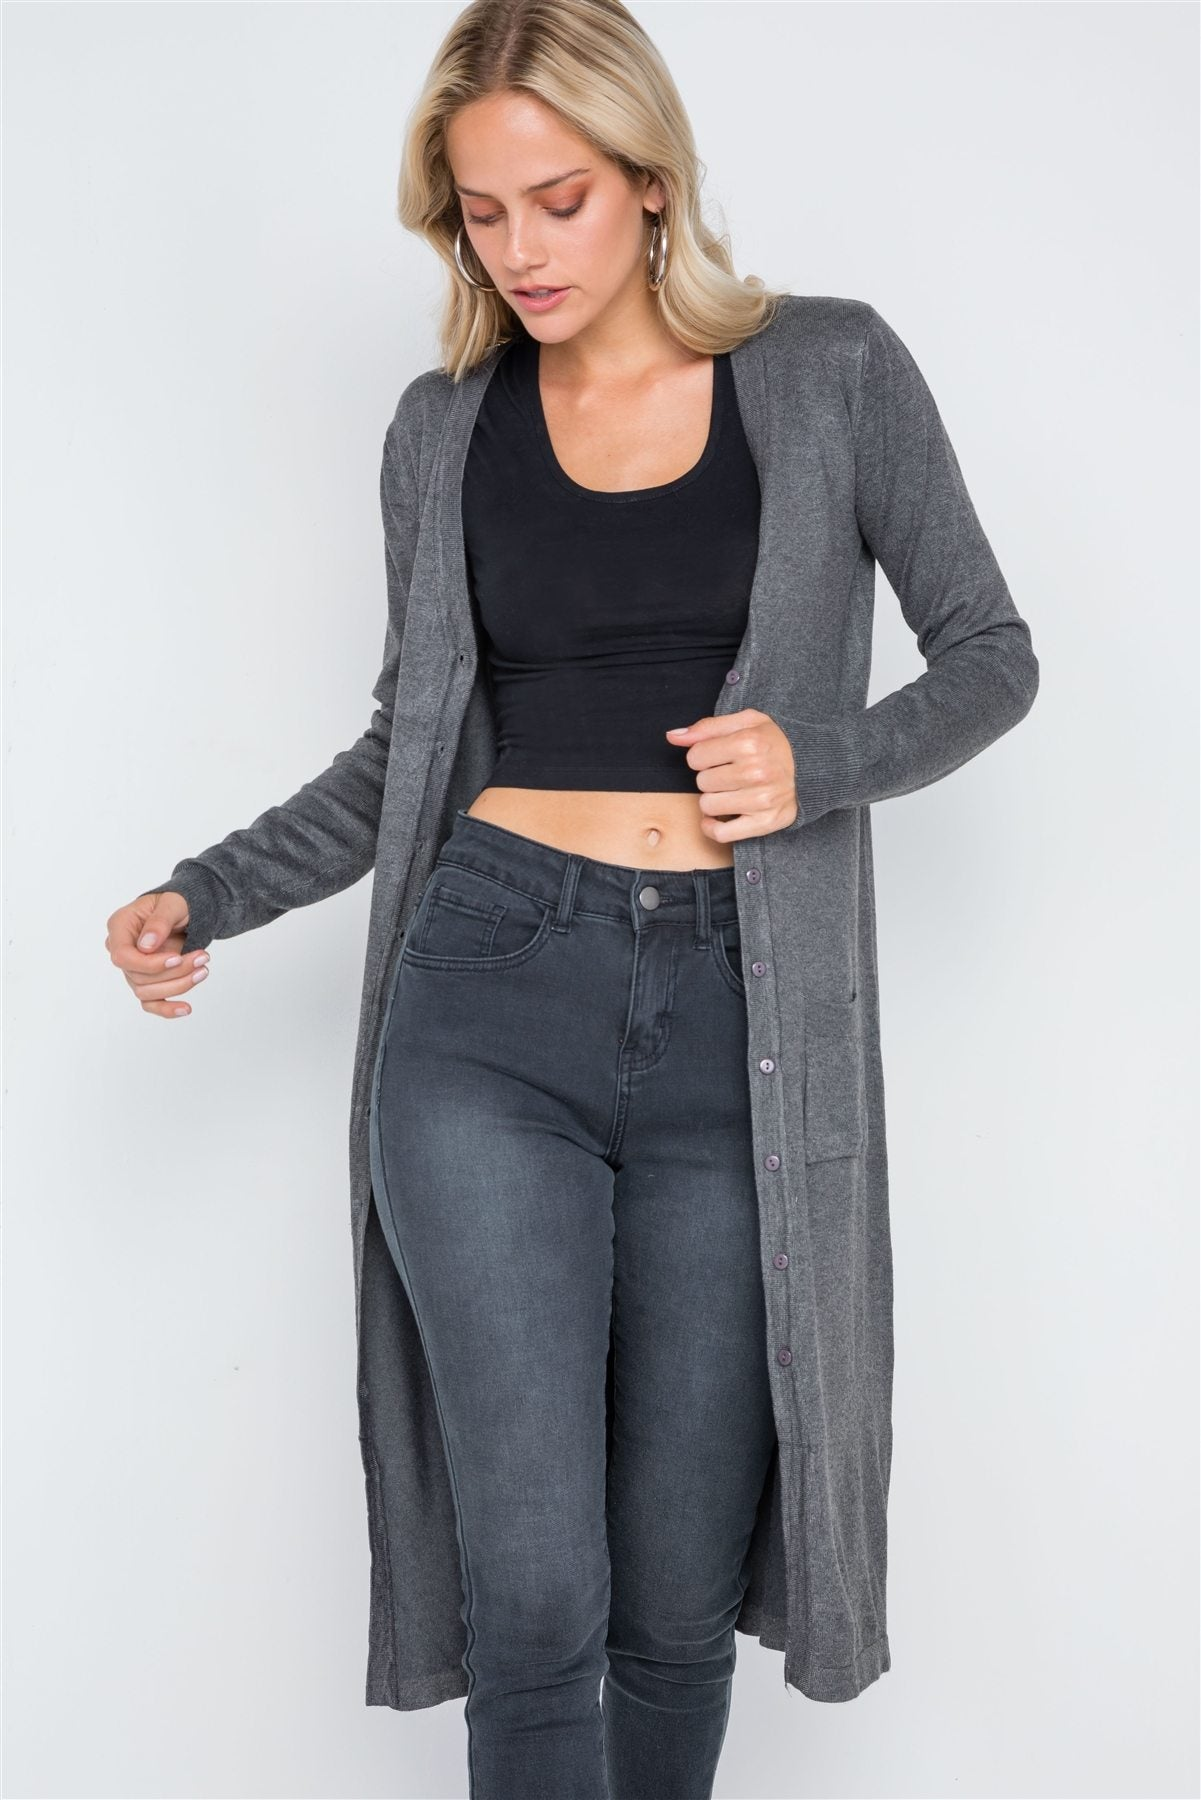 Button Front Long Line Cardigan - Kendalls Deals